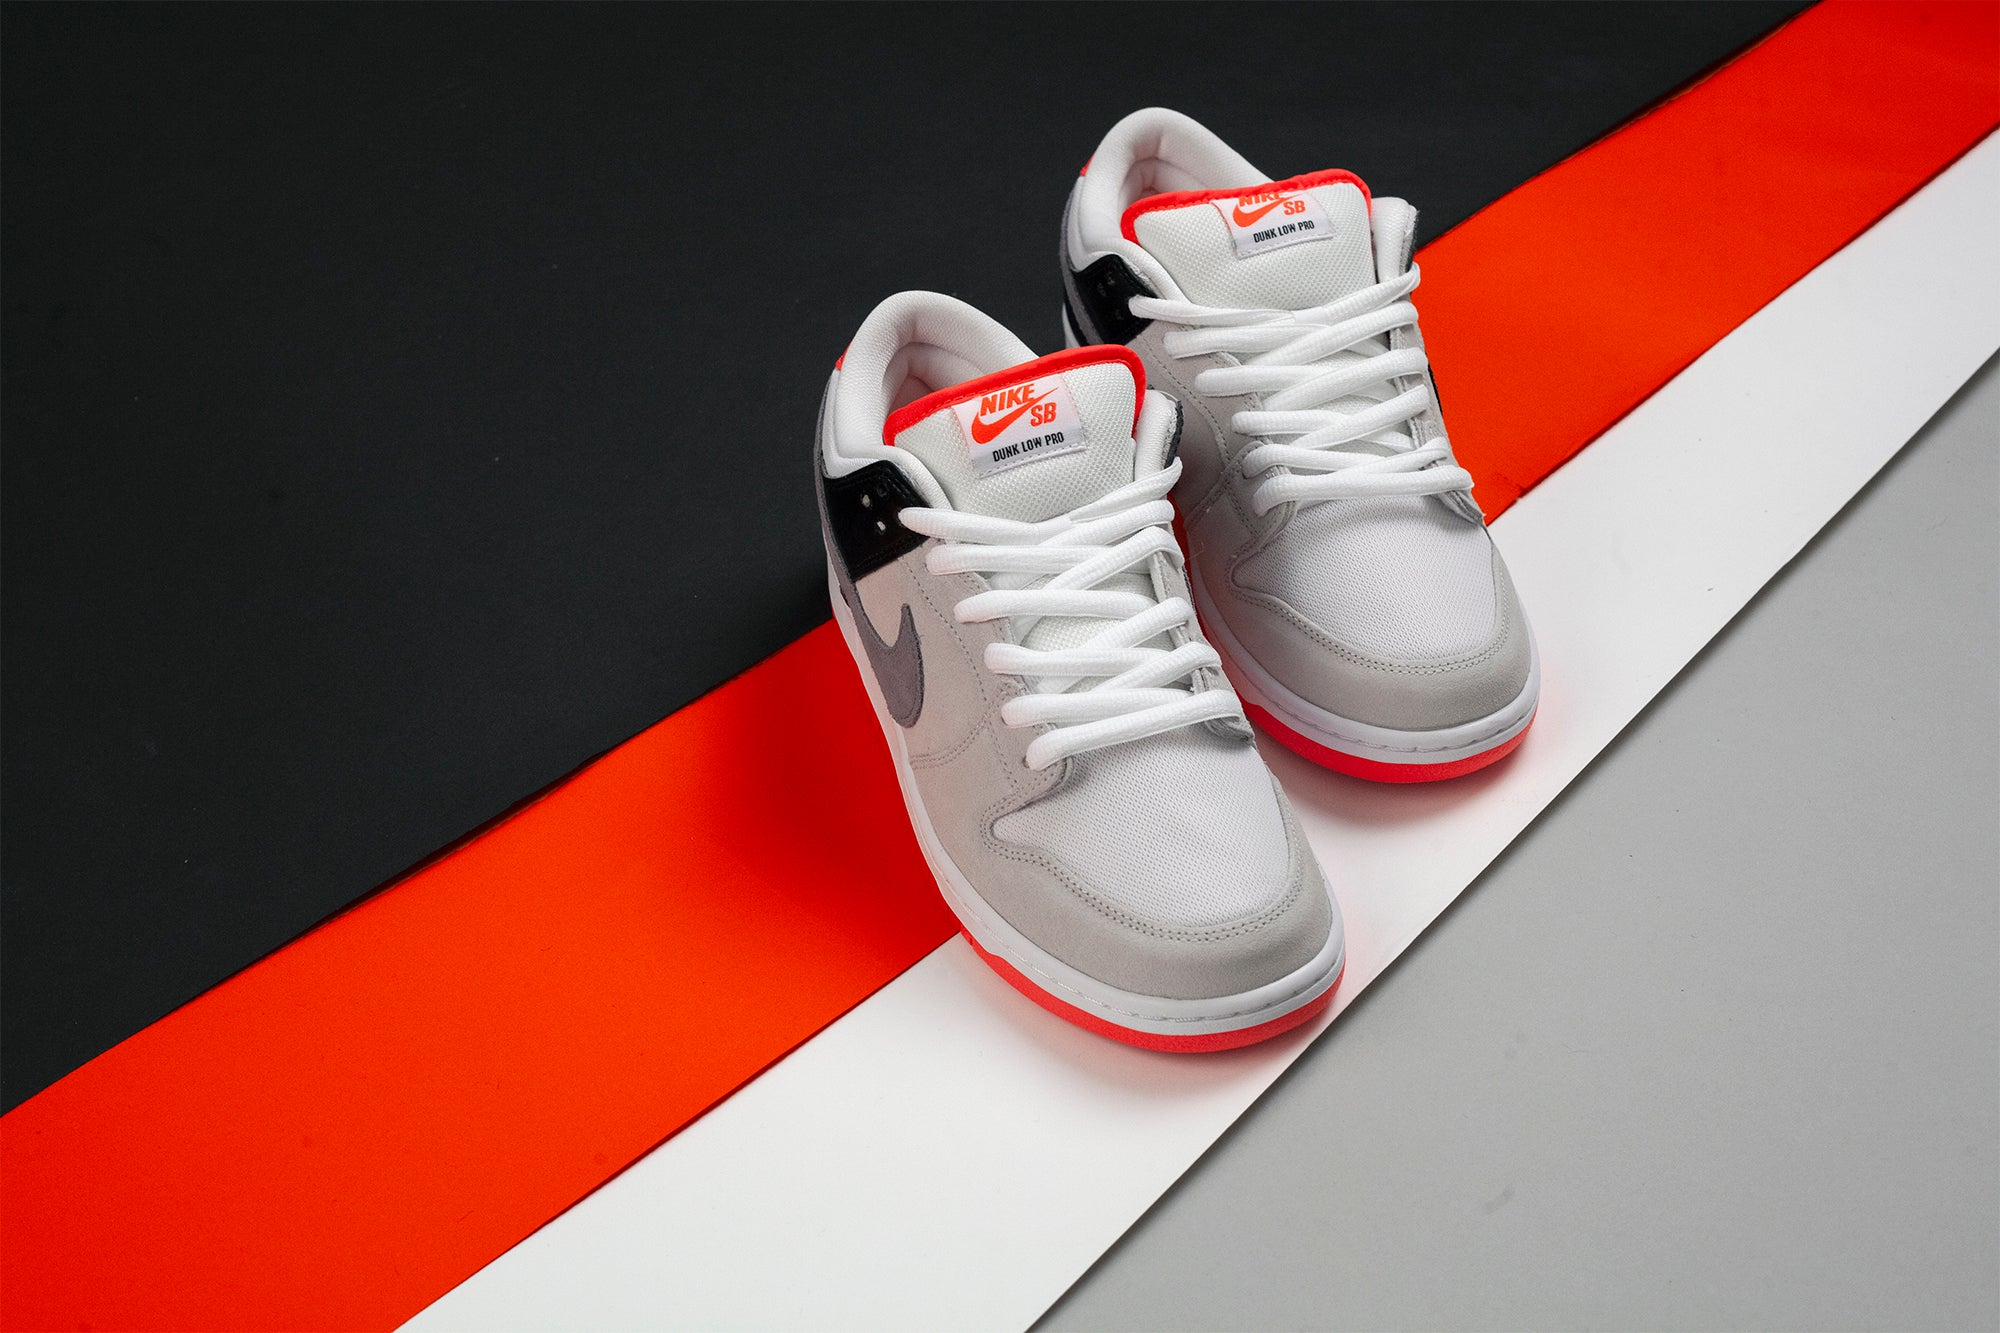 Nike_SB_Dunk_Low_Infared_Orange_Label_2